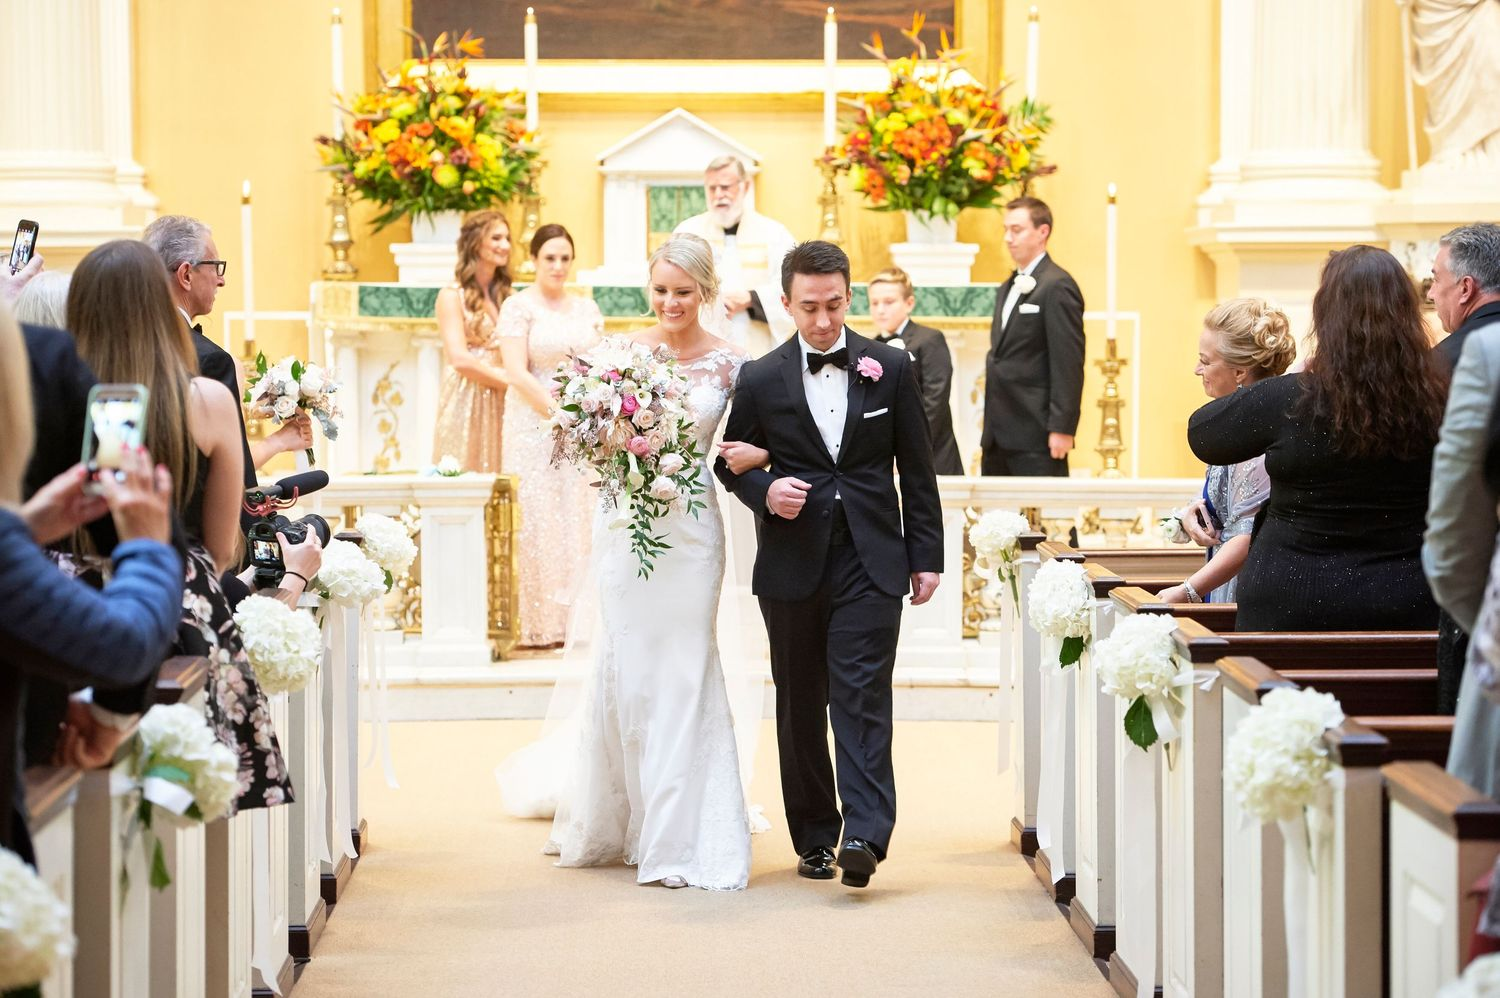 bride and groom recessional at Old St. Joseph's church in Philadelphia wedding photo